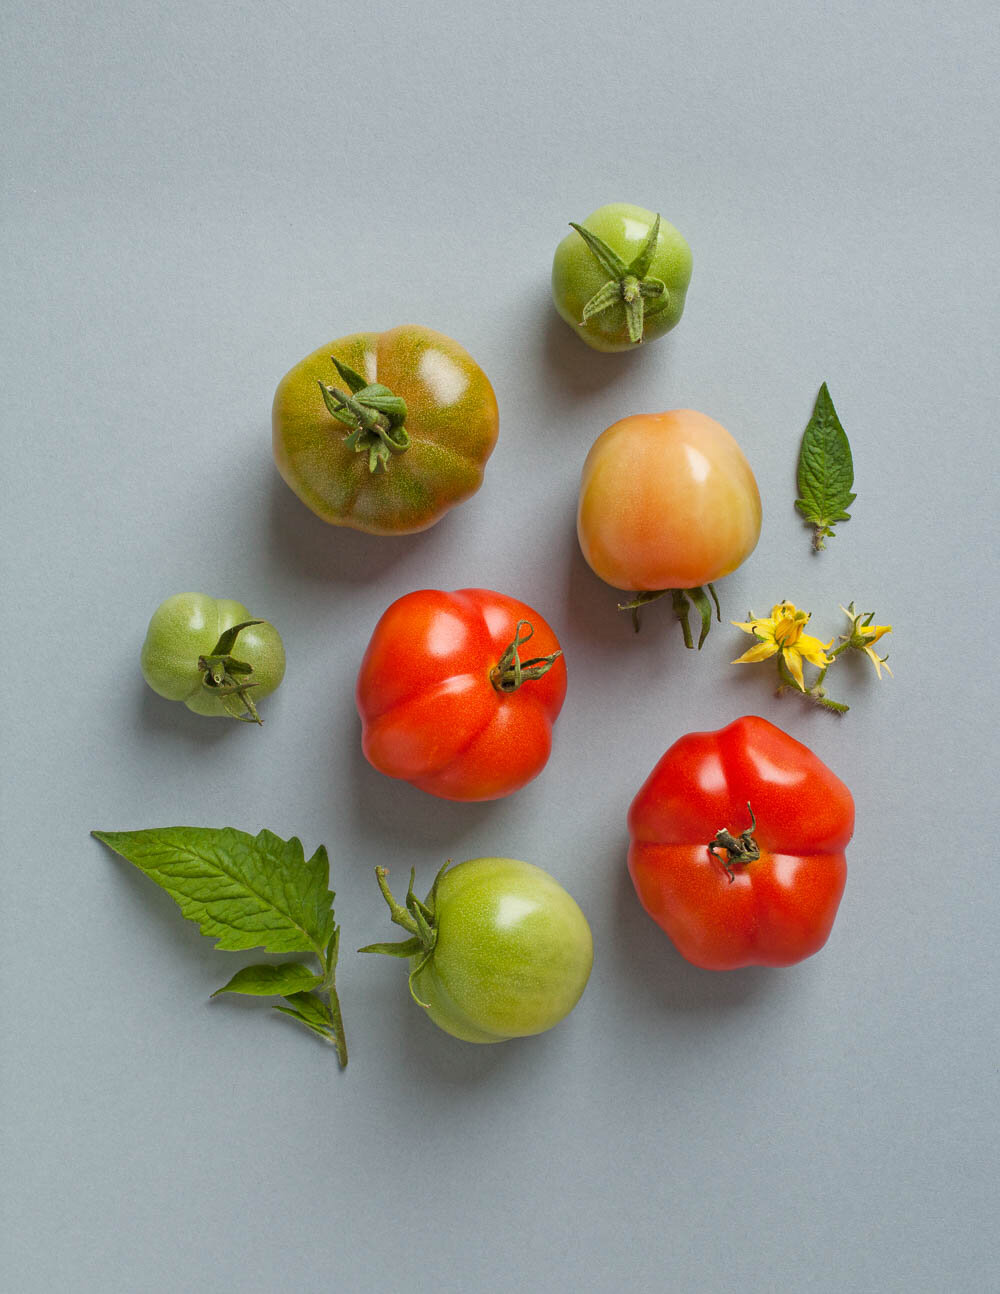 tomatoes on a blue/grey paper background